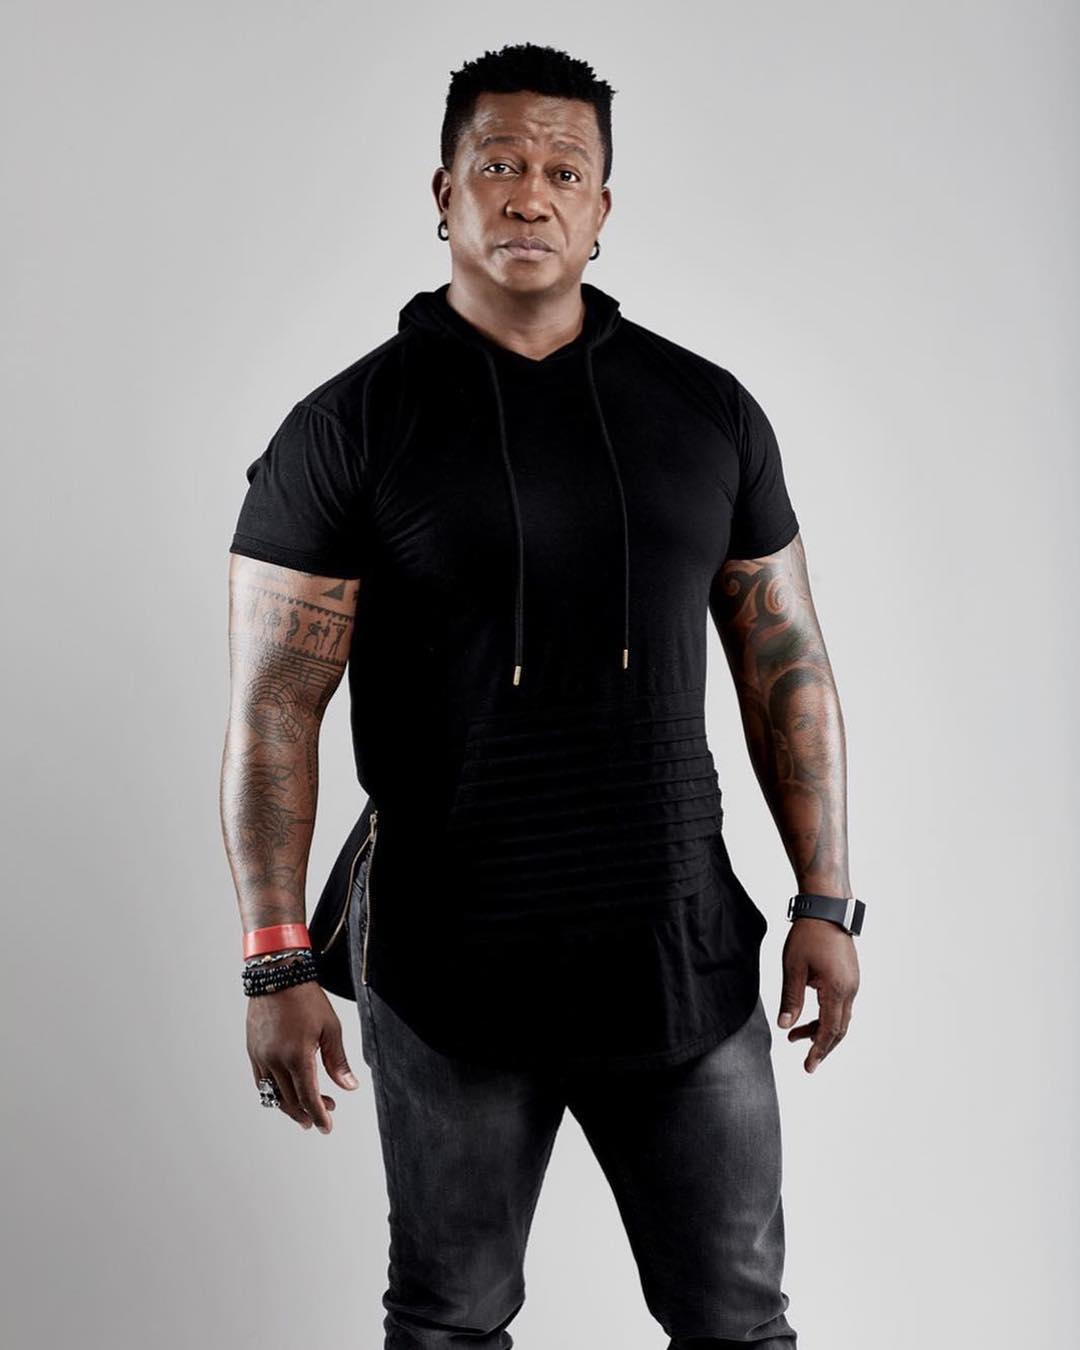 DJ Fresh Laments about being given exposure as a form of payment